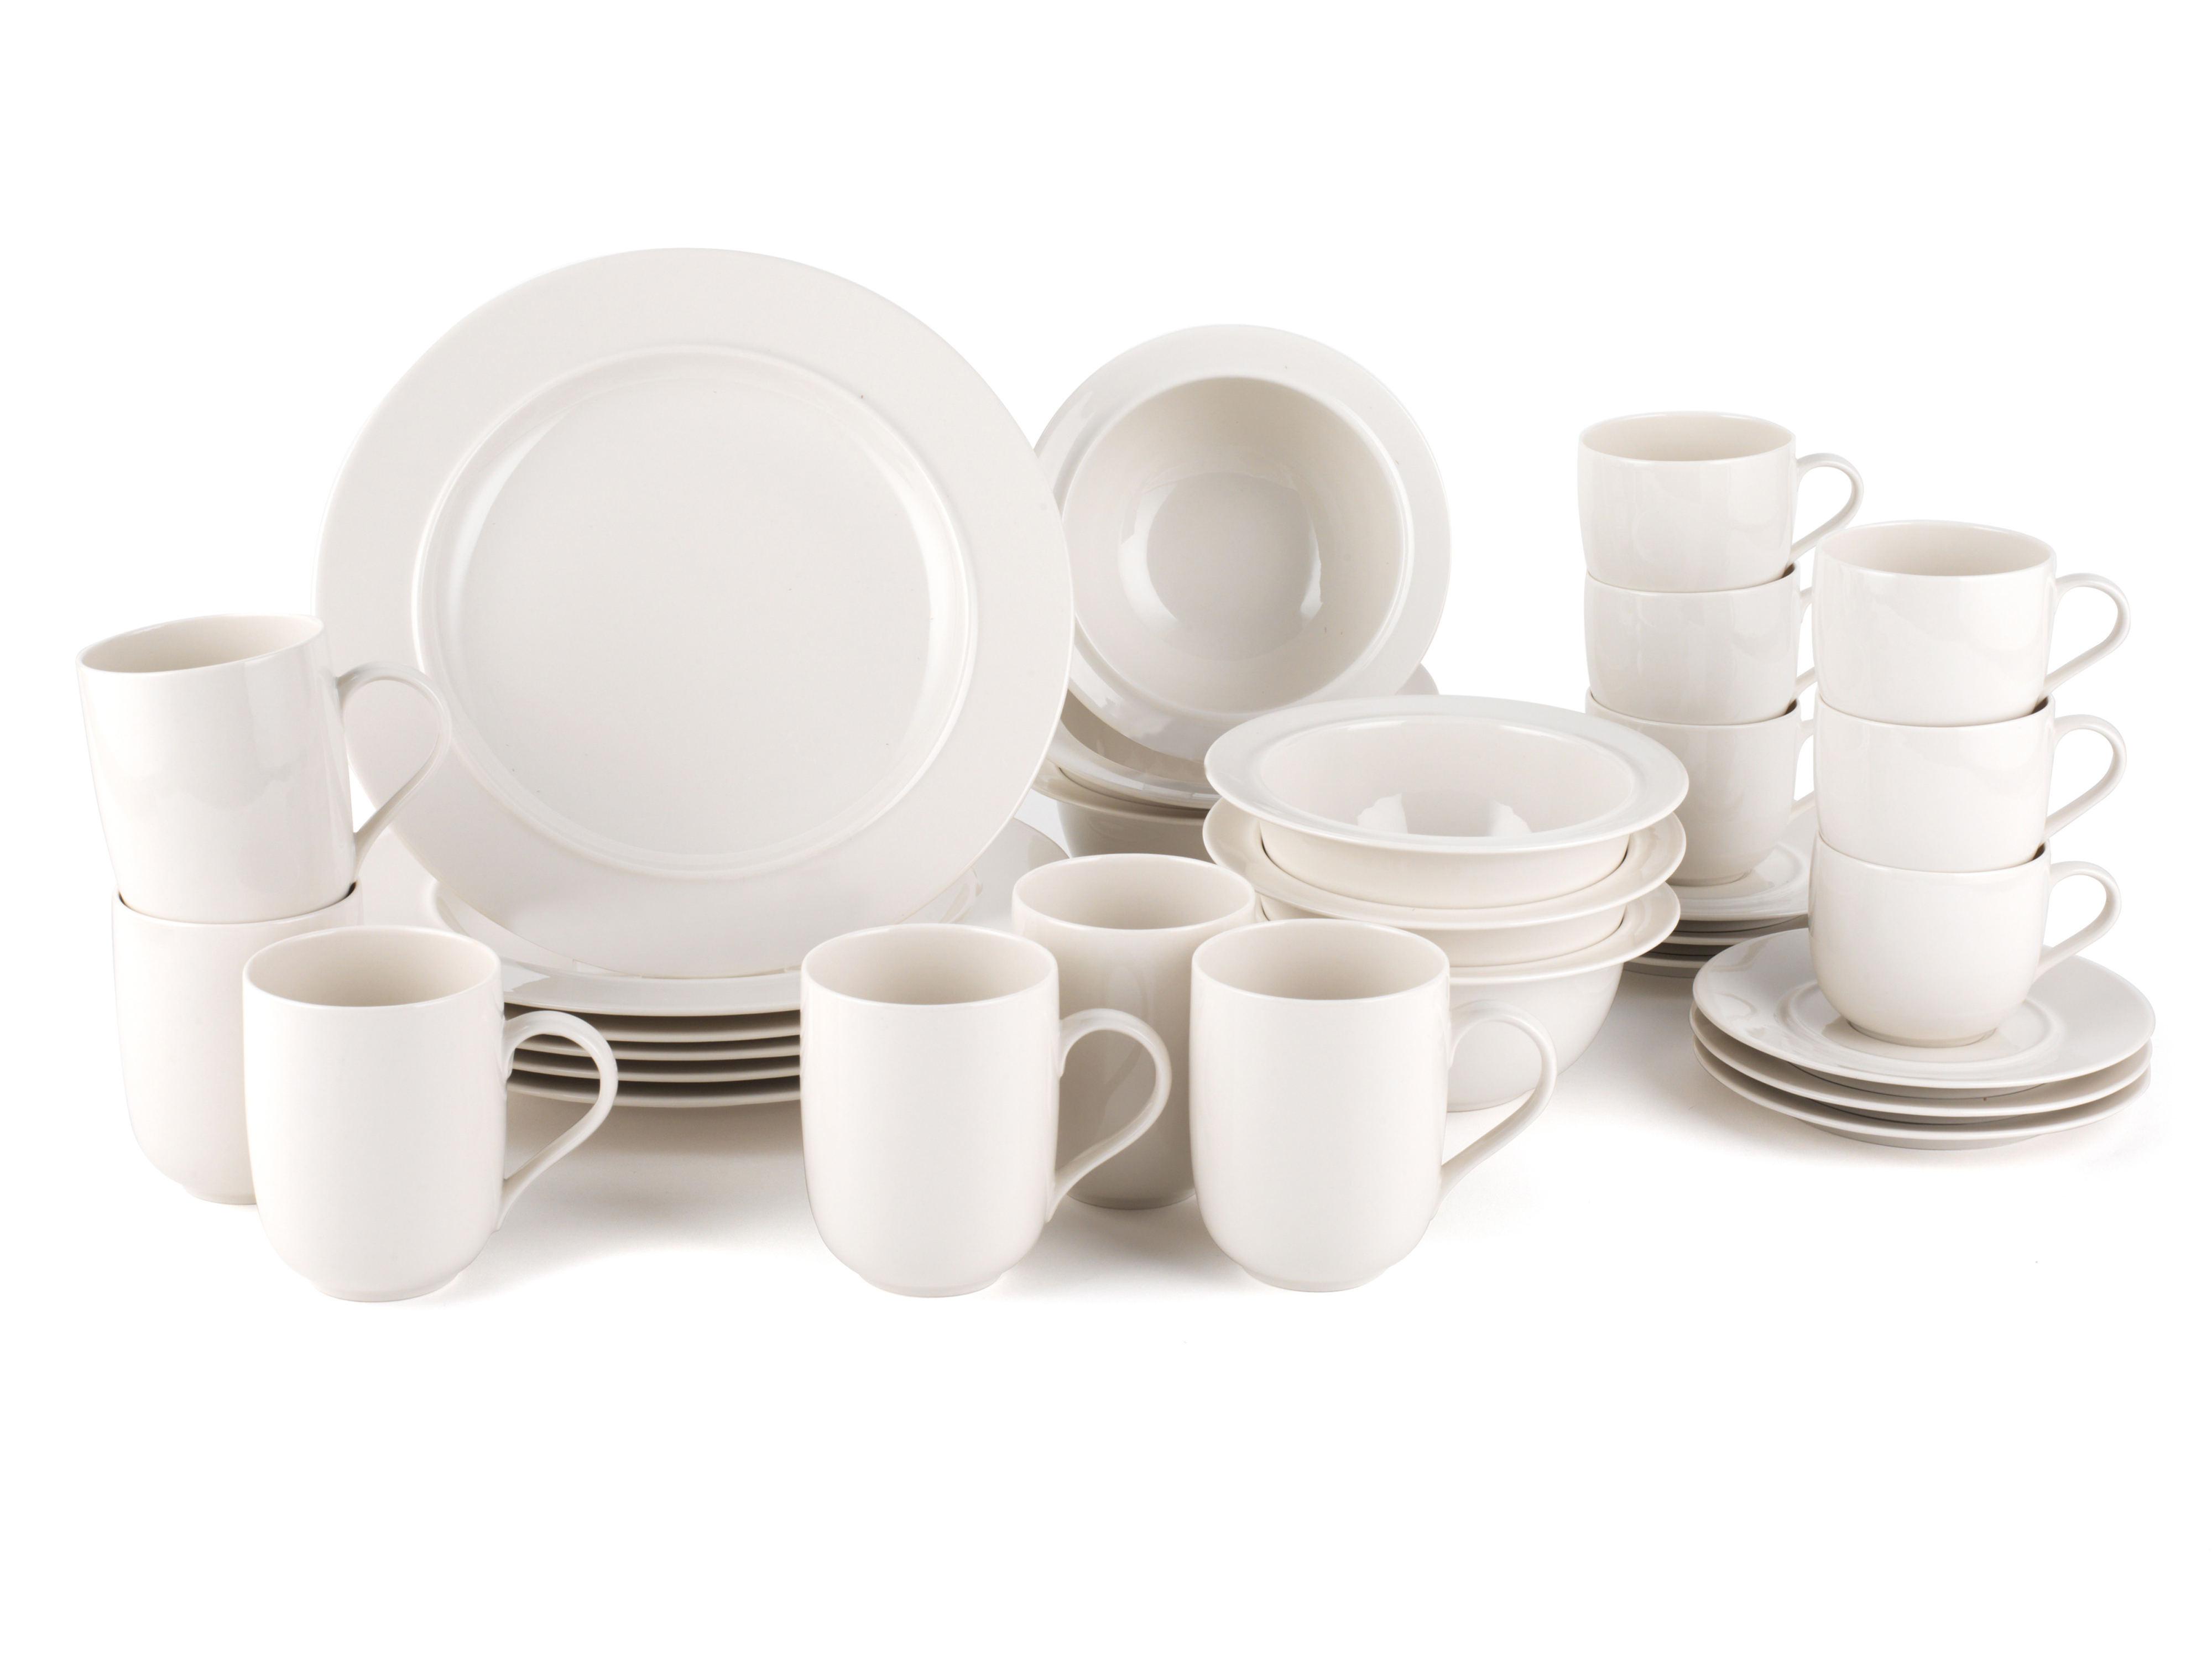 Alessi La Bella Tavola Porcelain 6-Place Setting Breakfast and Dinner Dining Set  sc 1 st  No1Brands4You & Alessi La Bella Tavola Porcelain 6-Place Setting Breakfast and ...